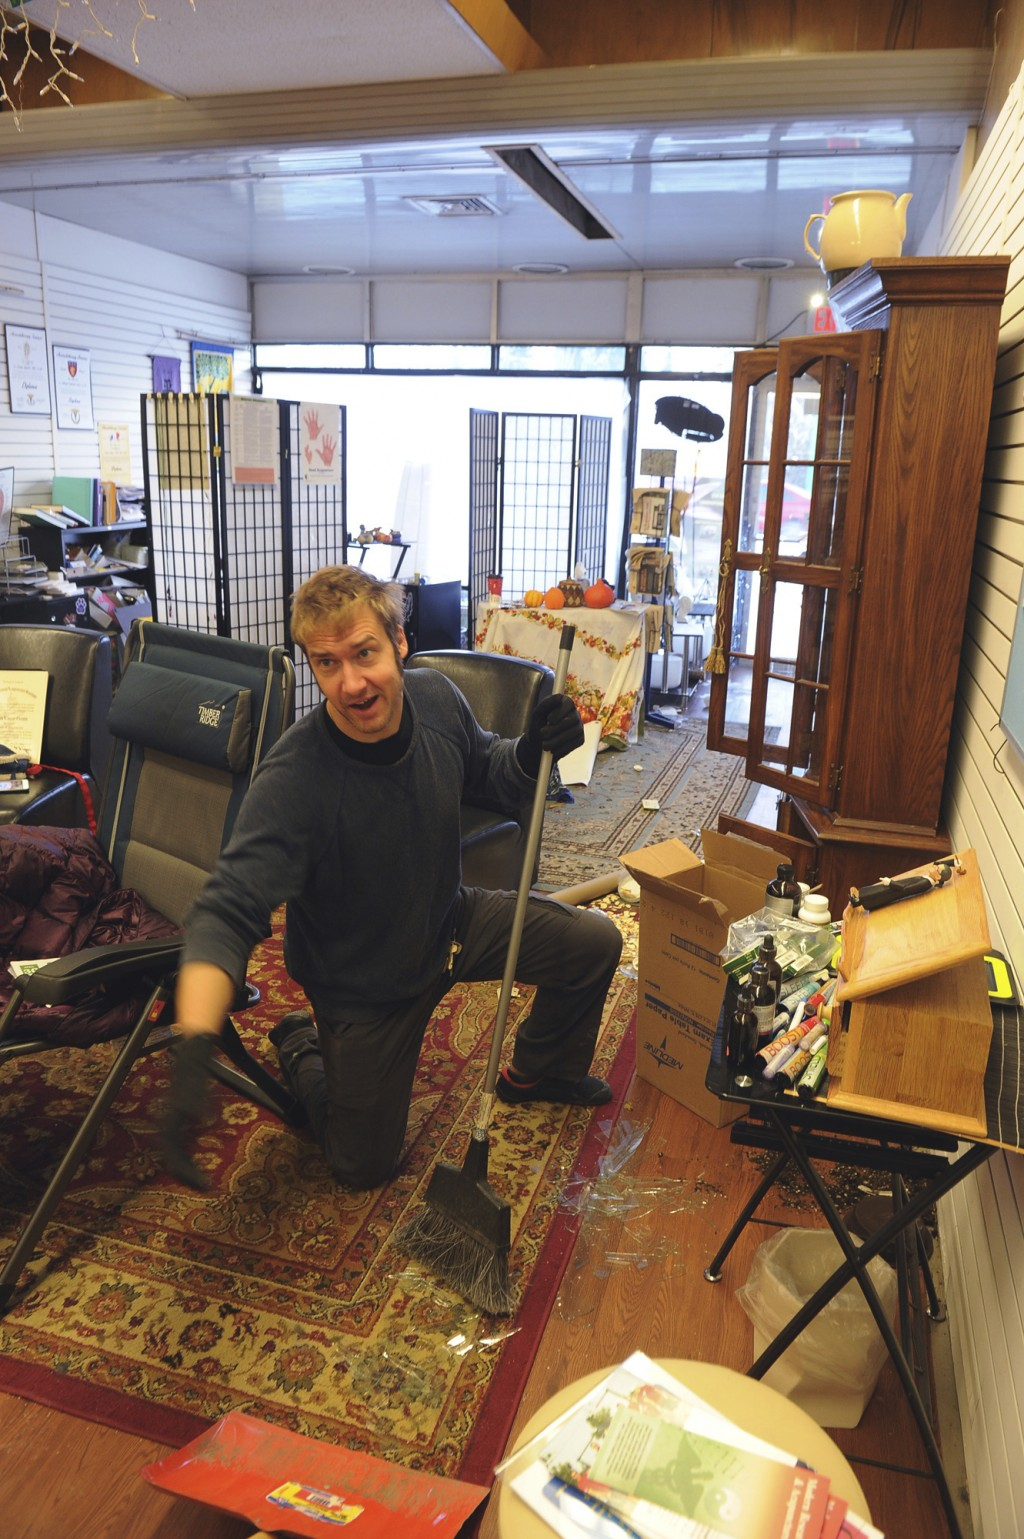 Tristan Covina helps clean up broken glass in the offices of the Institute Alaska, following an earthquake, Friday, Nov. 30, 2018, in Anchorage, Alask...